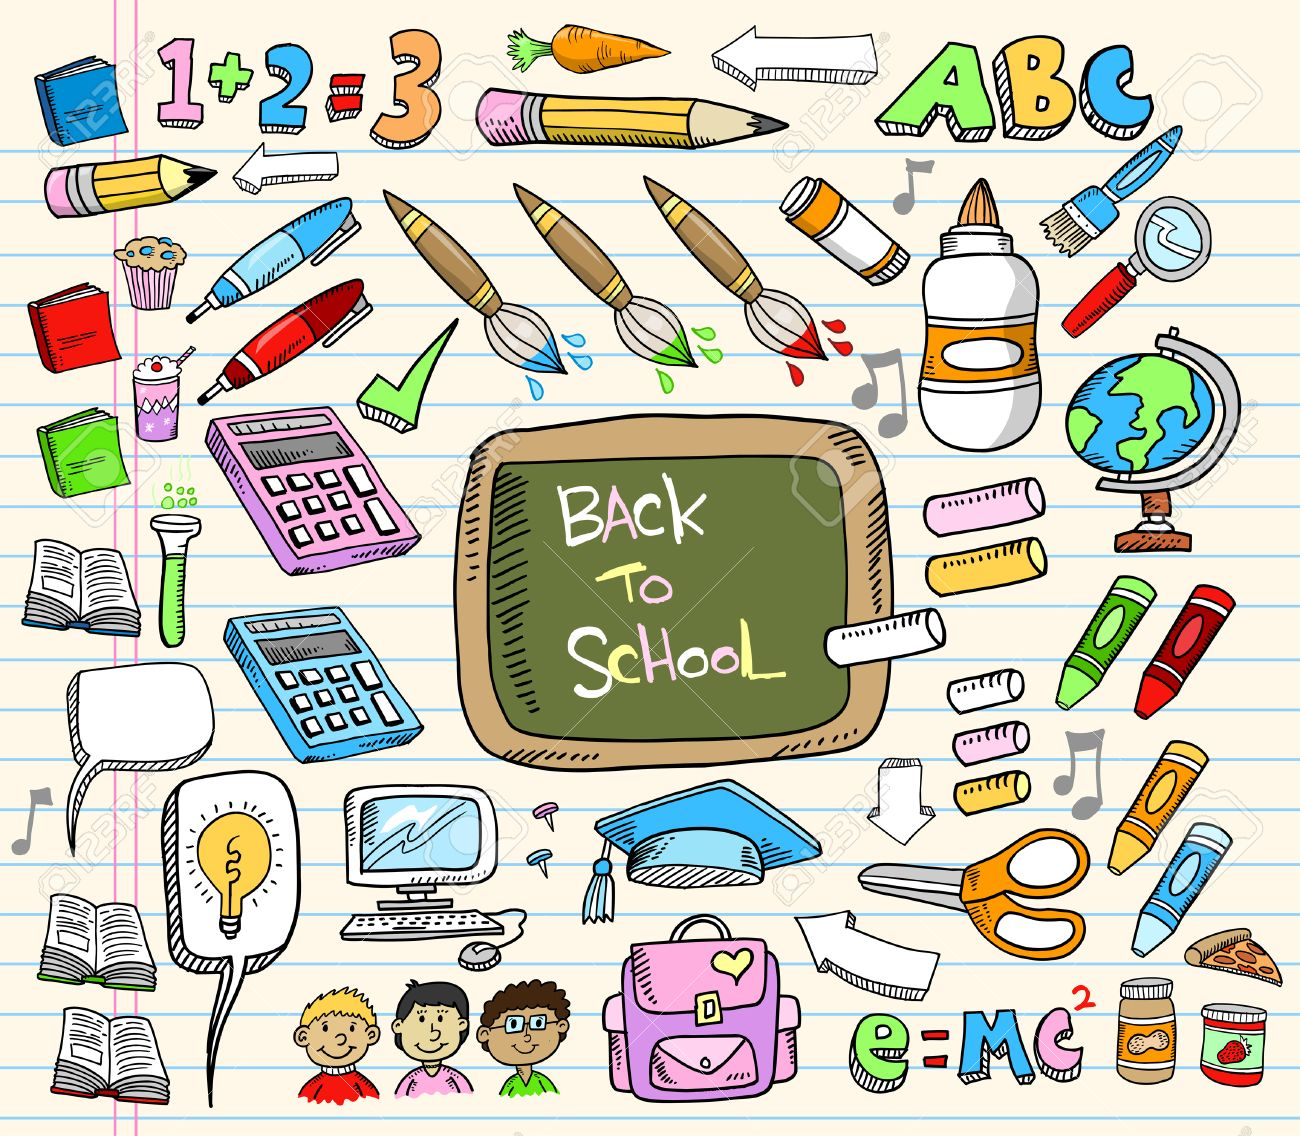 Back to School Doodle Education Illustration Set Stock Vector - 7261097